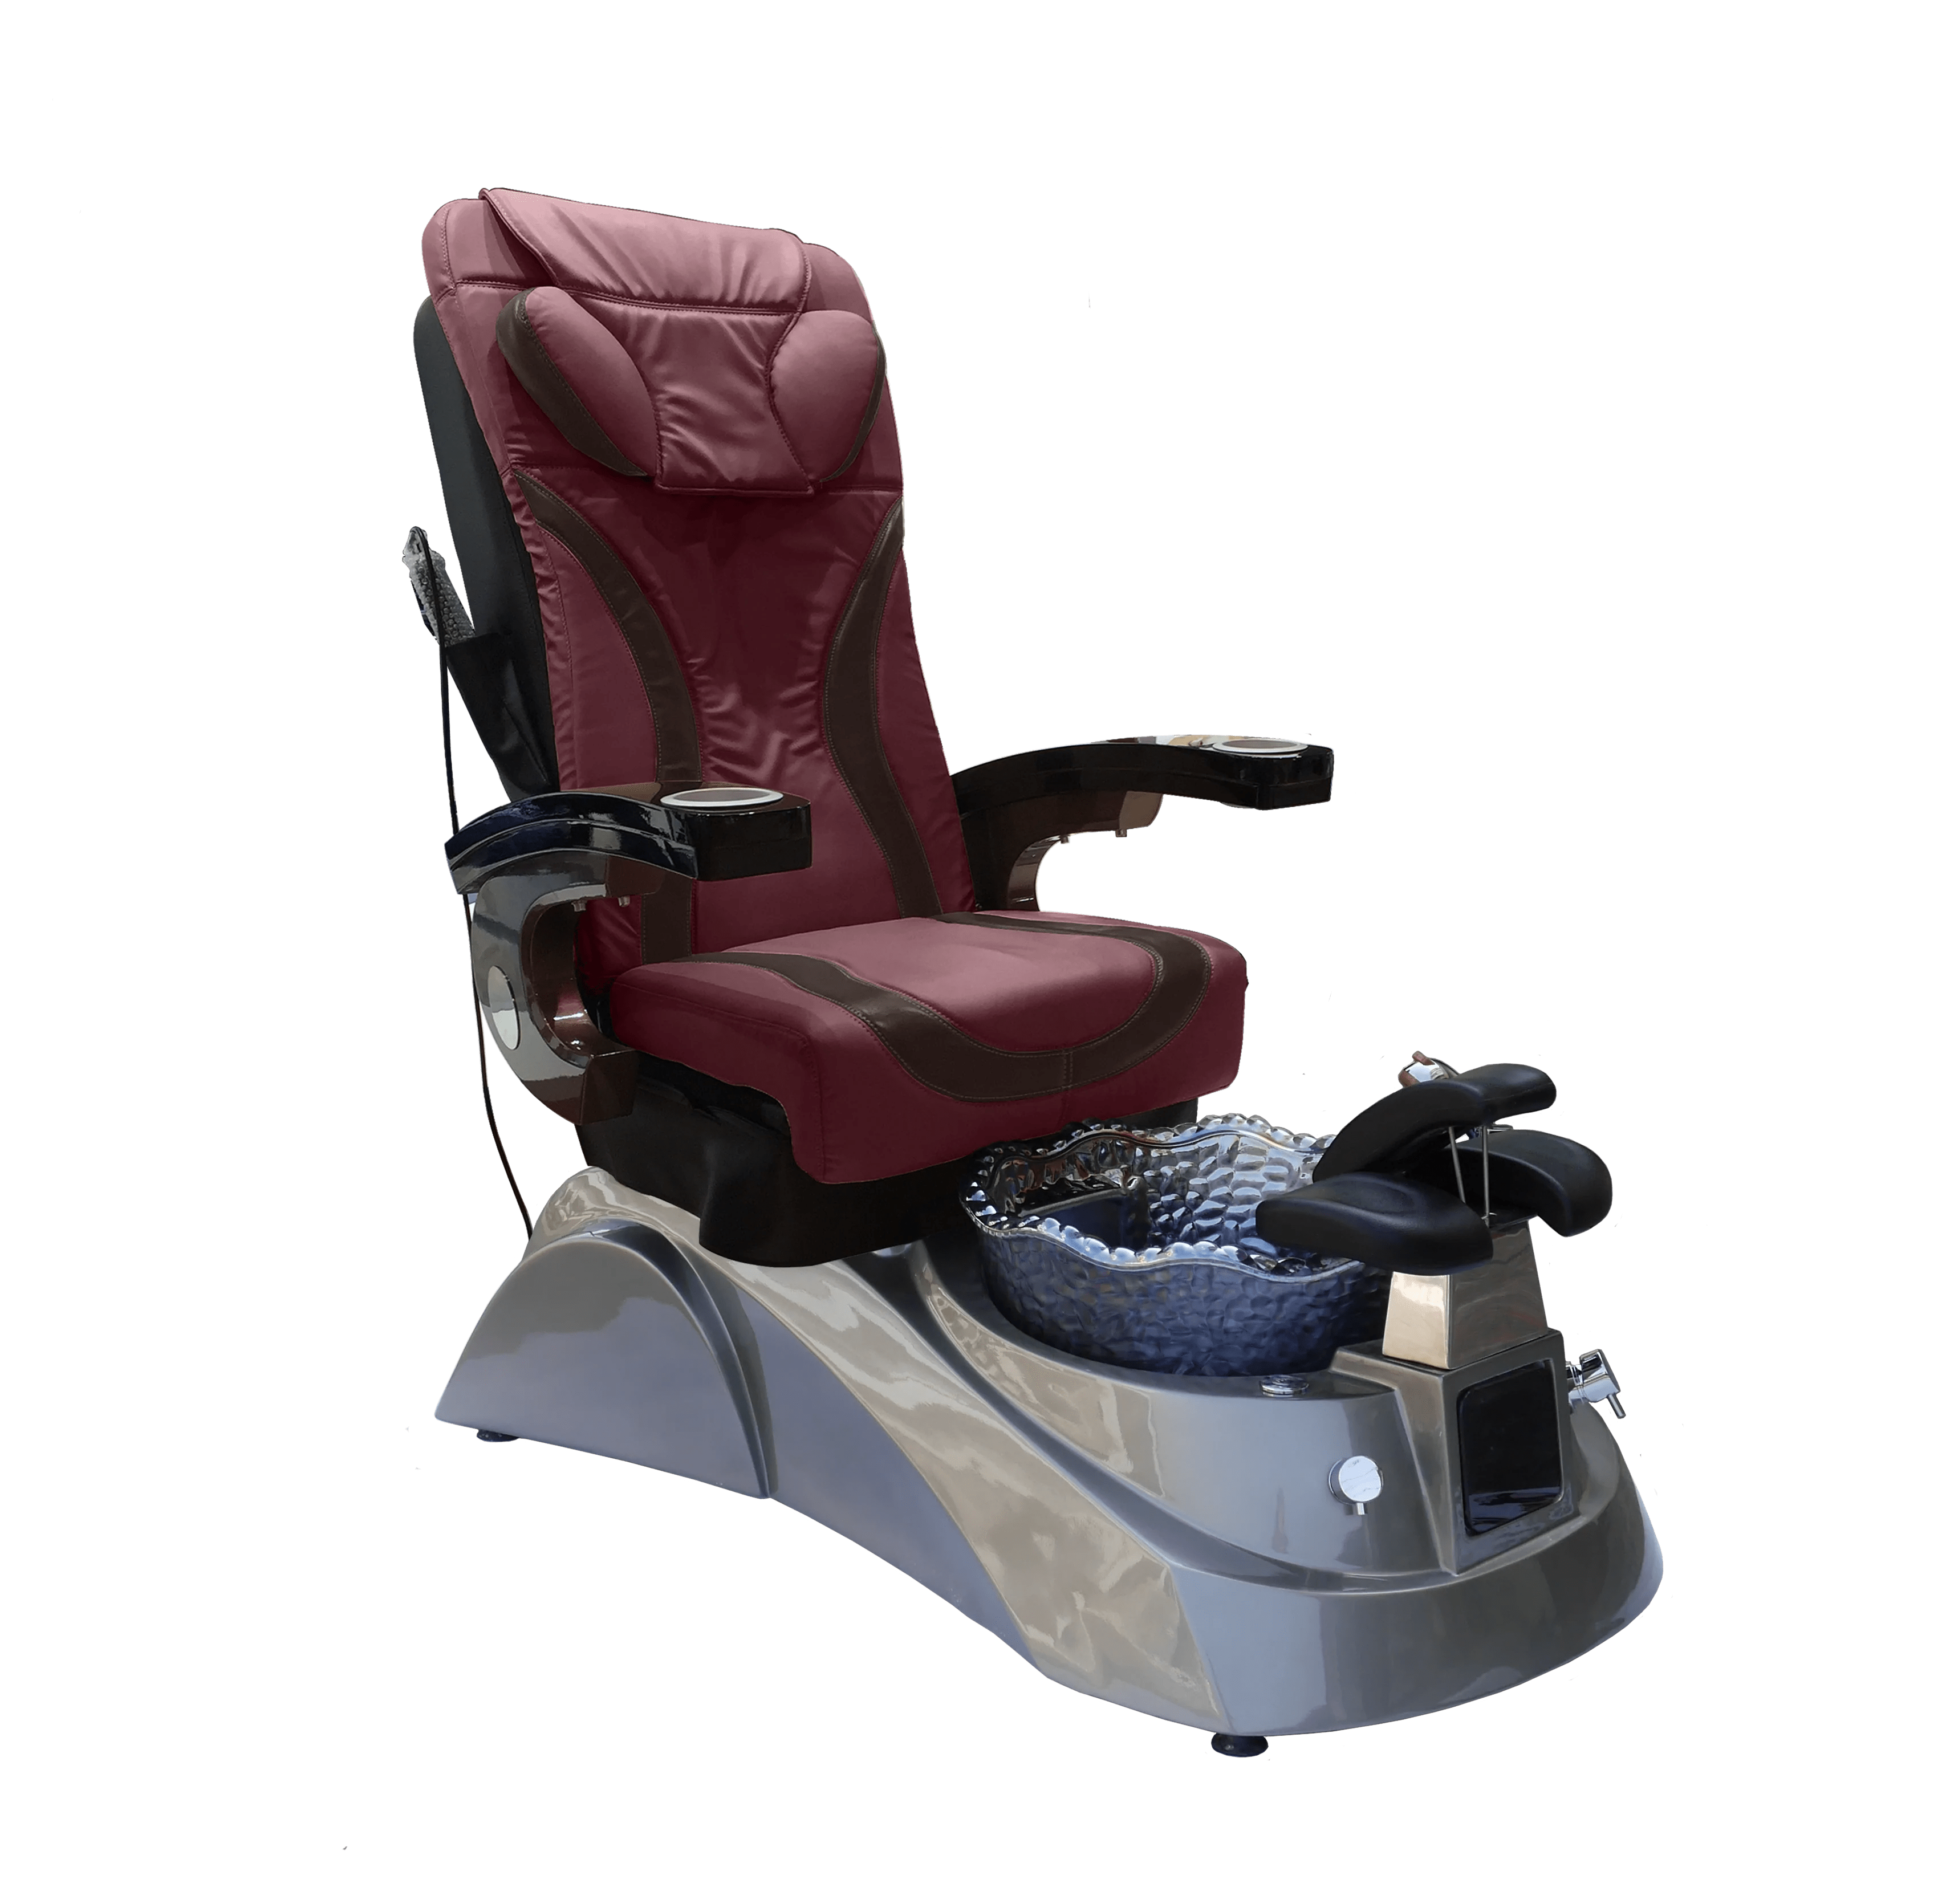 best pedicure chairs reviews chair cover upholstery fabric essential spa equipment 3 breizh beauty